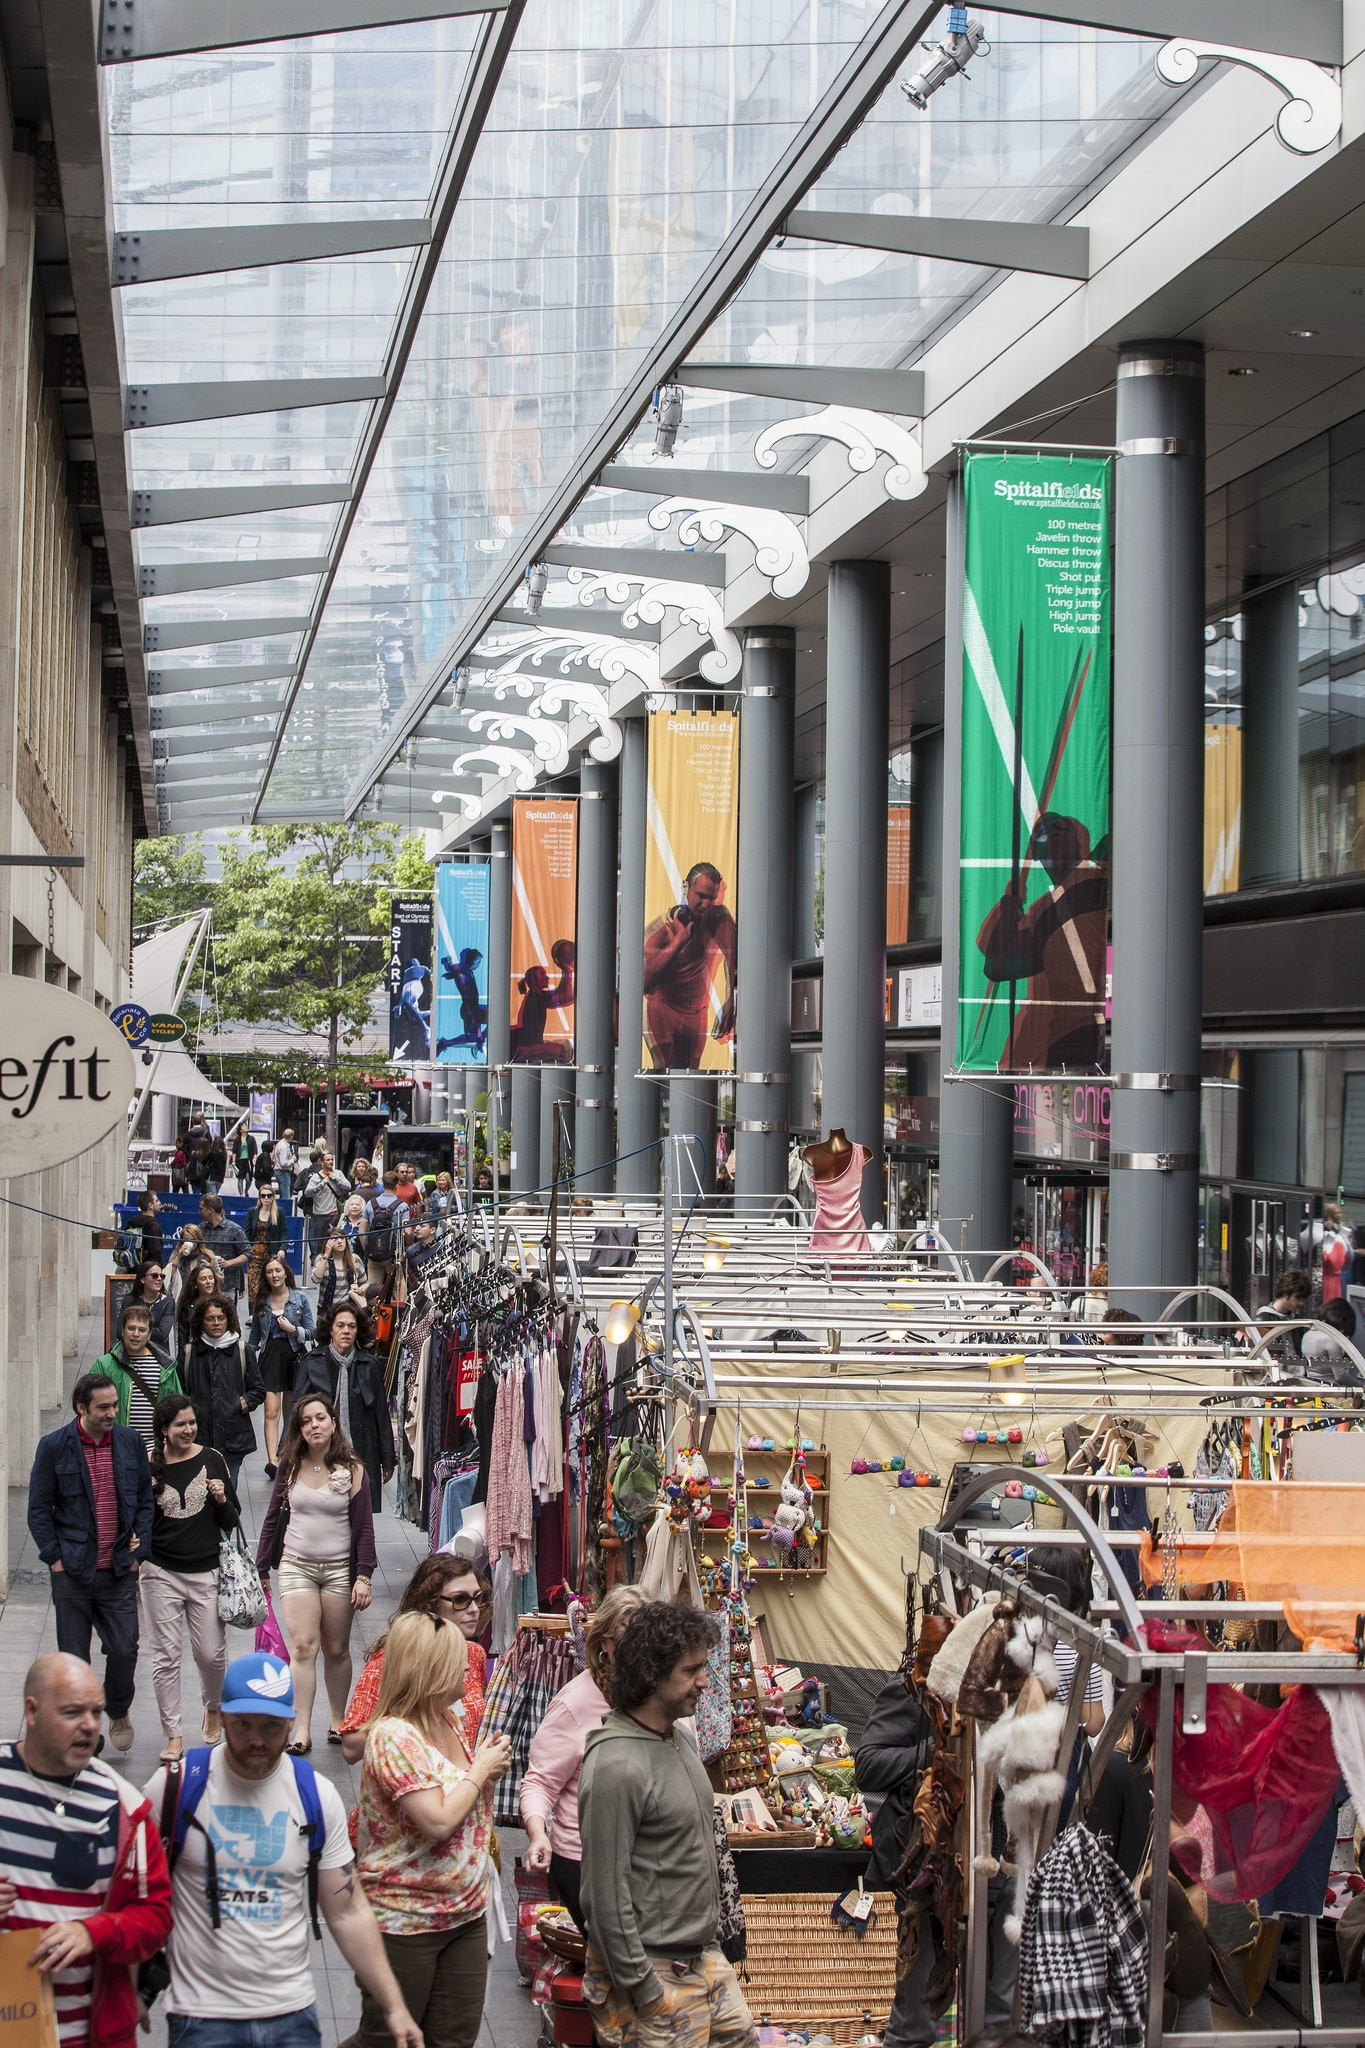 Places to go in London - Spitalfields Market has a great selection of stalls and shops